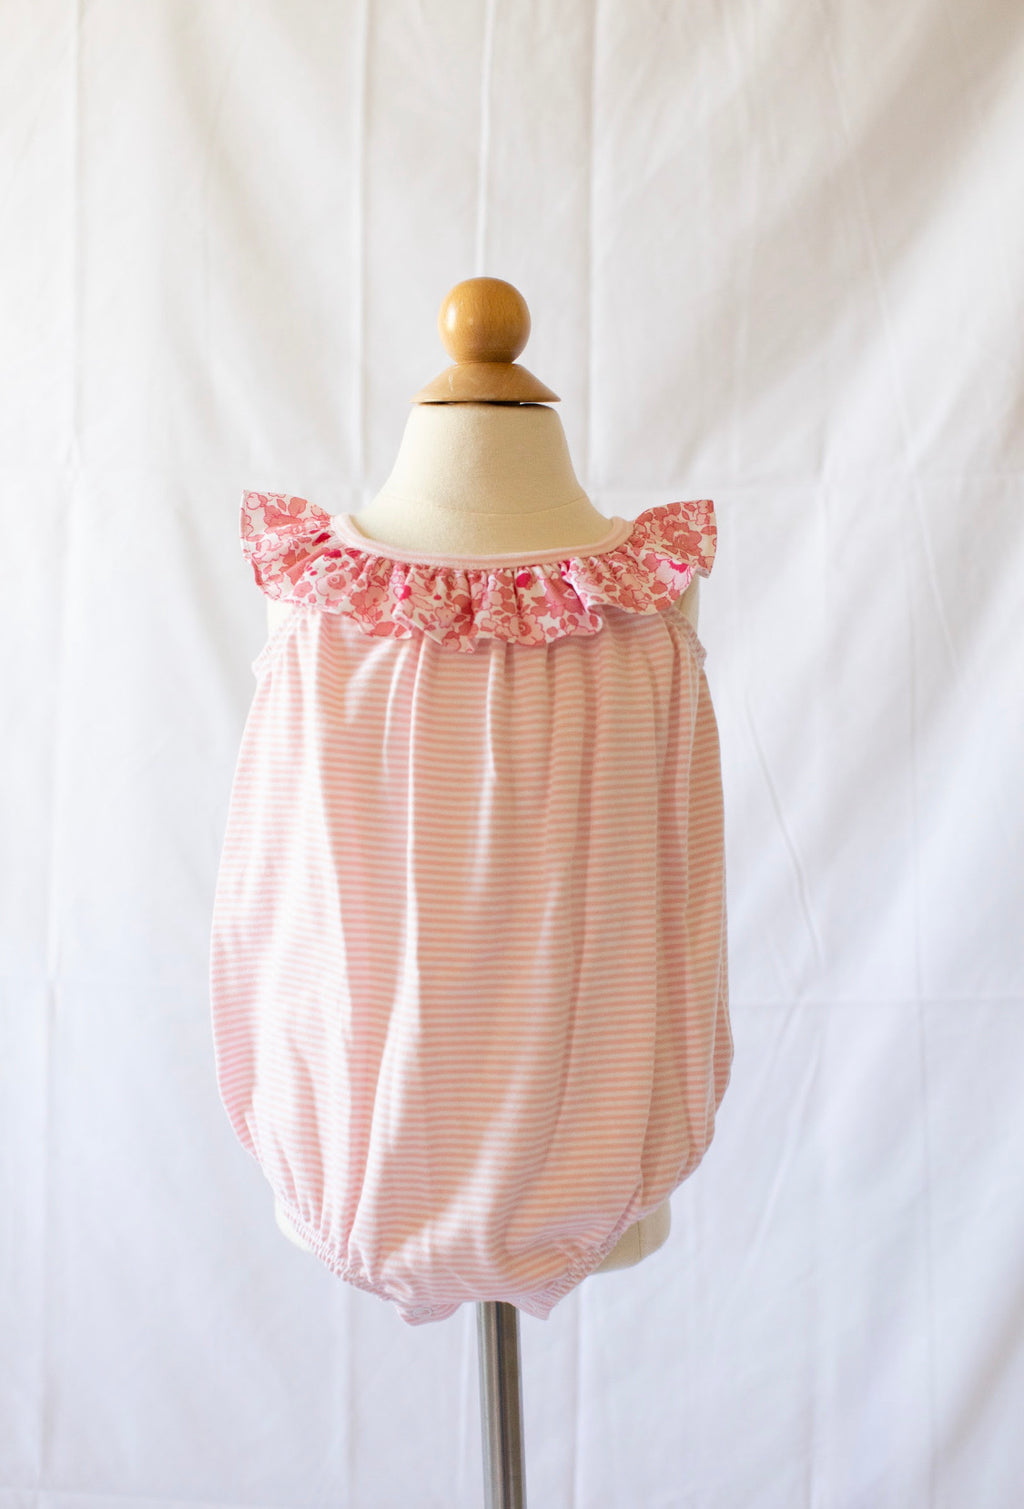 Knit Bubble - Pink Candy Stripe W Libba Floral - Born Childrens Boutique